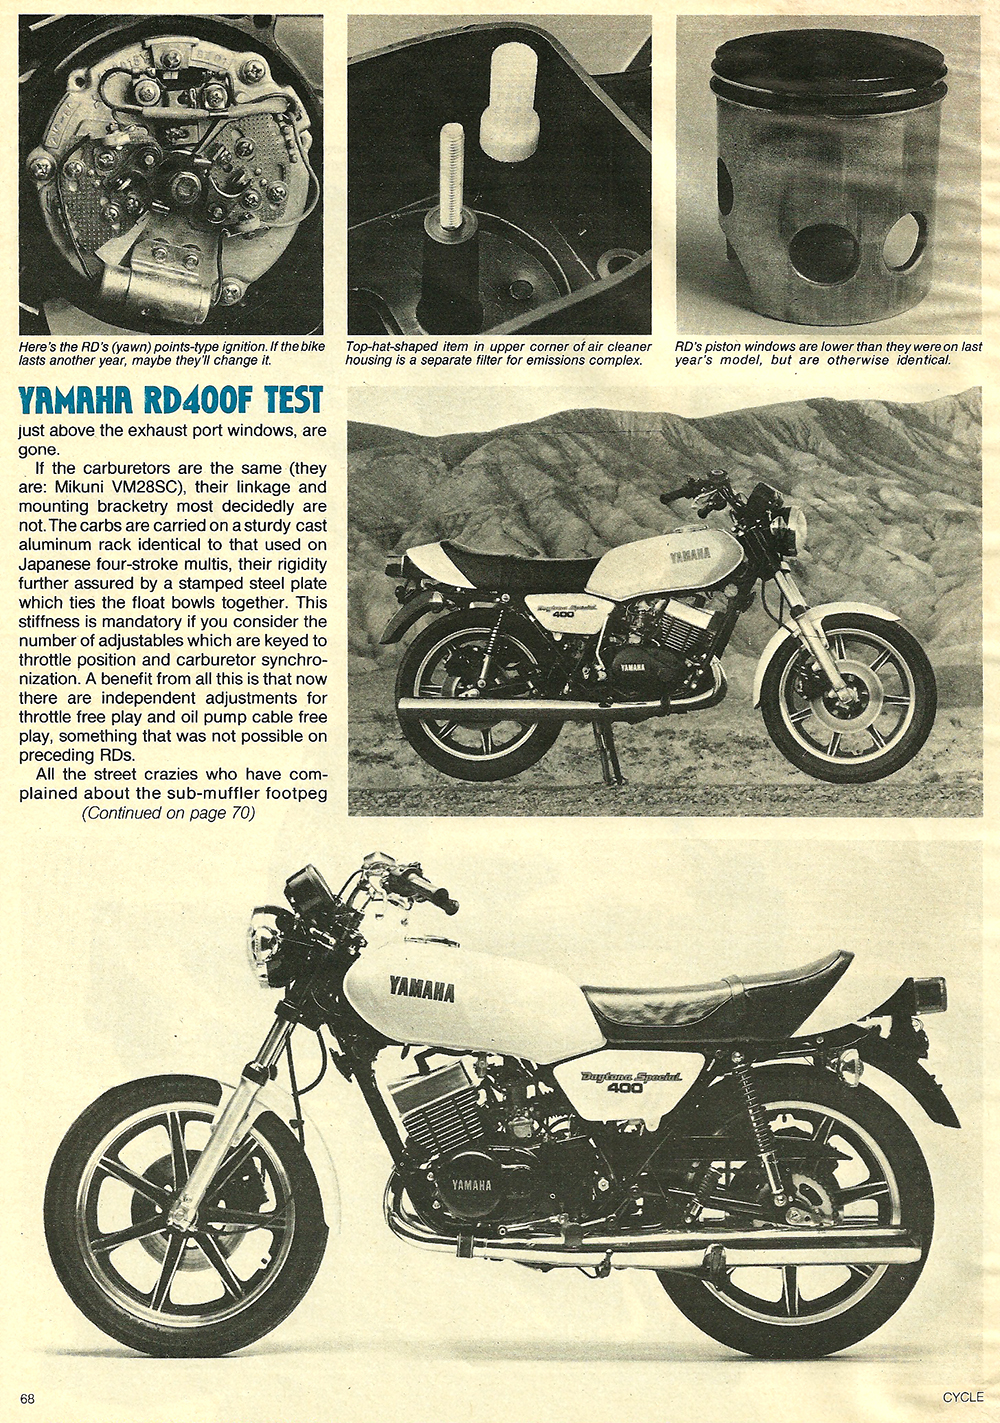 1979 Yamaha RD400F road test 07.jpg